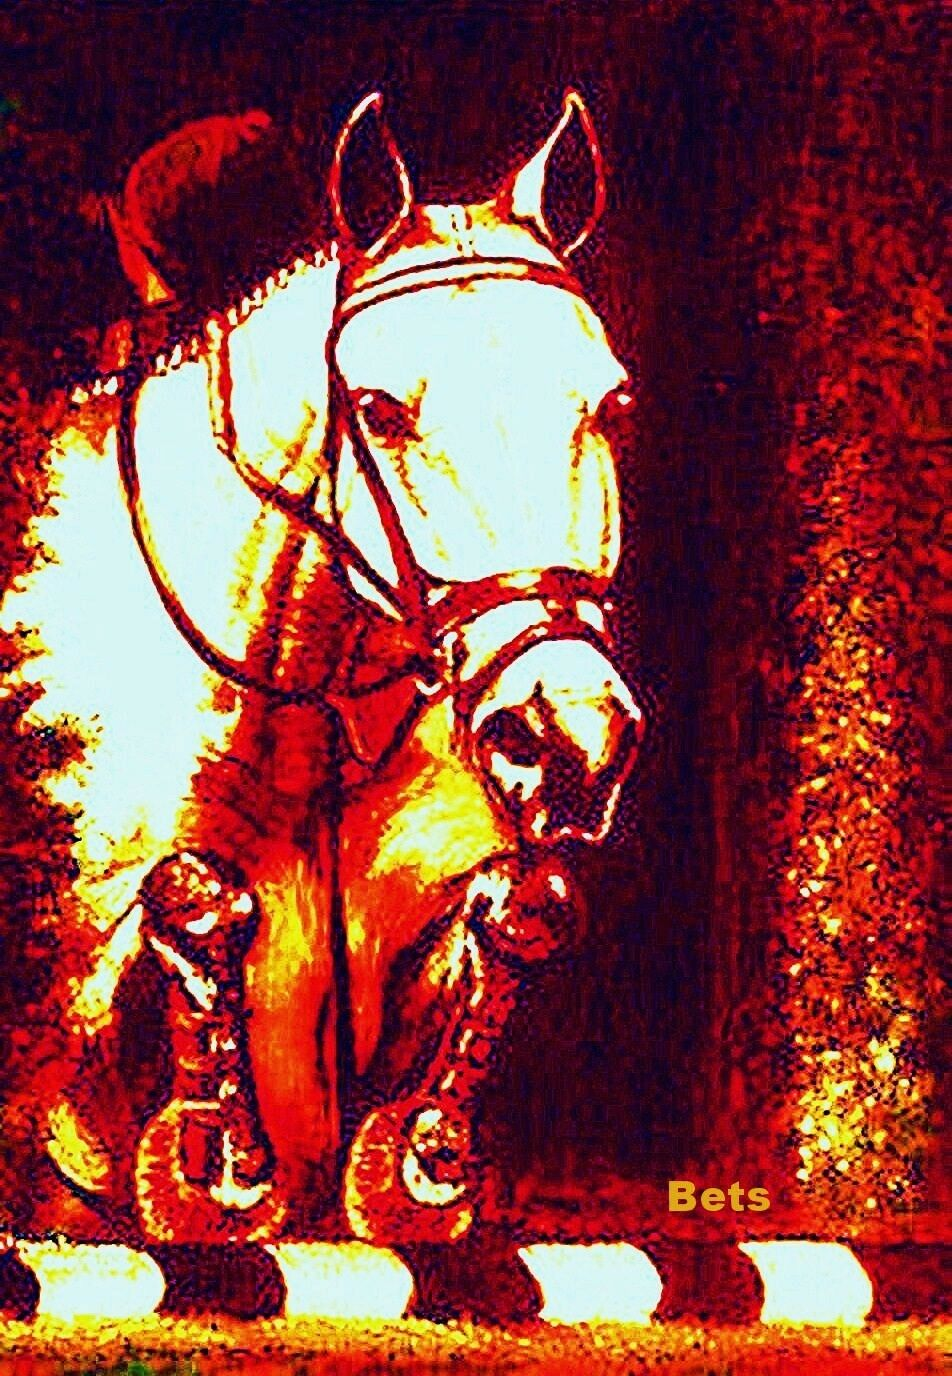 HORSE PRINT Giclee JUMPER Art NO FAULTS artist BETS  5 COLORS print size 14 X 19